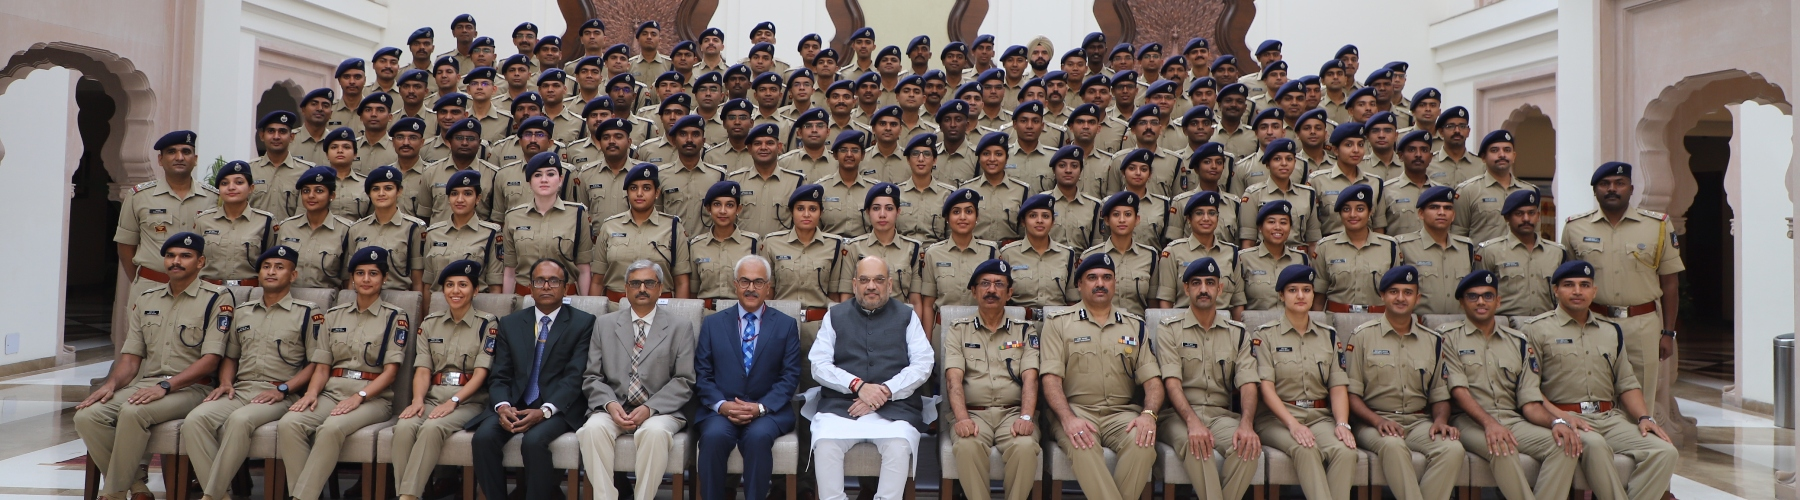 Union Minister for Home Affairs, Shri Amit Shah in a group photograph with the Probationers of 2018 Batch of Indian Police Service (IPS) in New Delhi, on October 7, 2019. Union Home Secretary, Shri Ajay Kumar Bhalla is also seen.